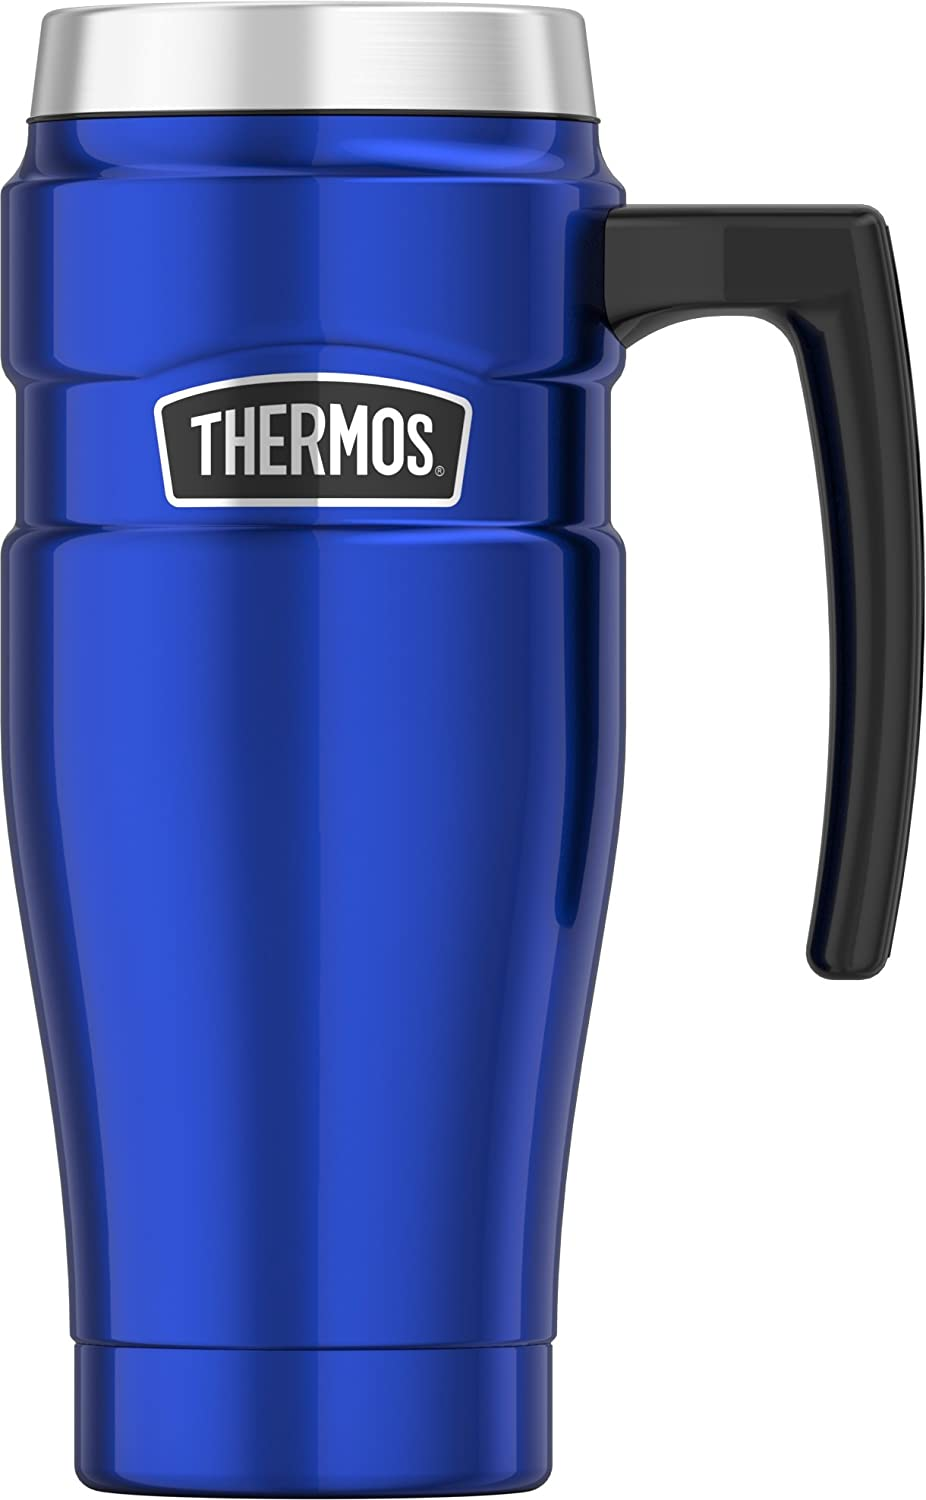 Thermos Stainless King 16 Ounce Travel Mug with Handle, Cranberry L.L.C. SK1000CRTRI4